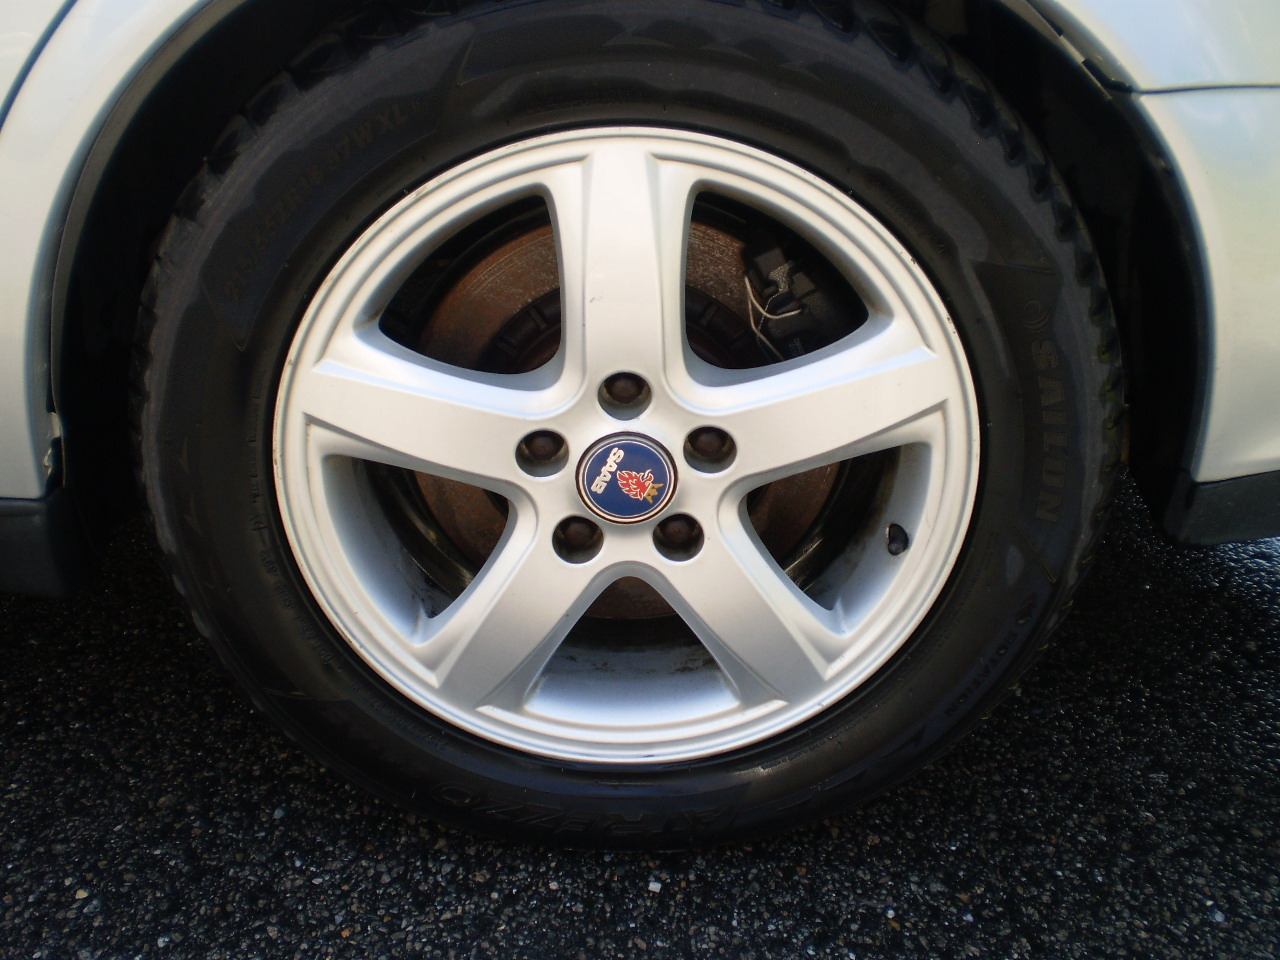 16in Rims (ONLY) 2003 SAAB 9-5 Wagon